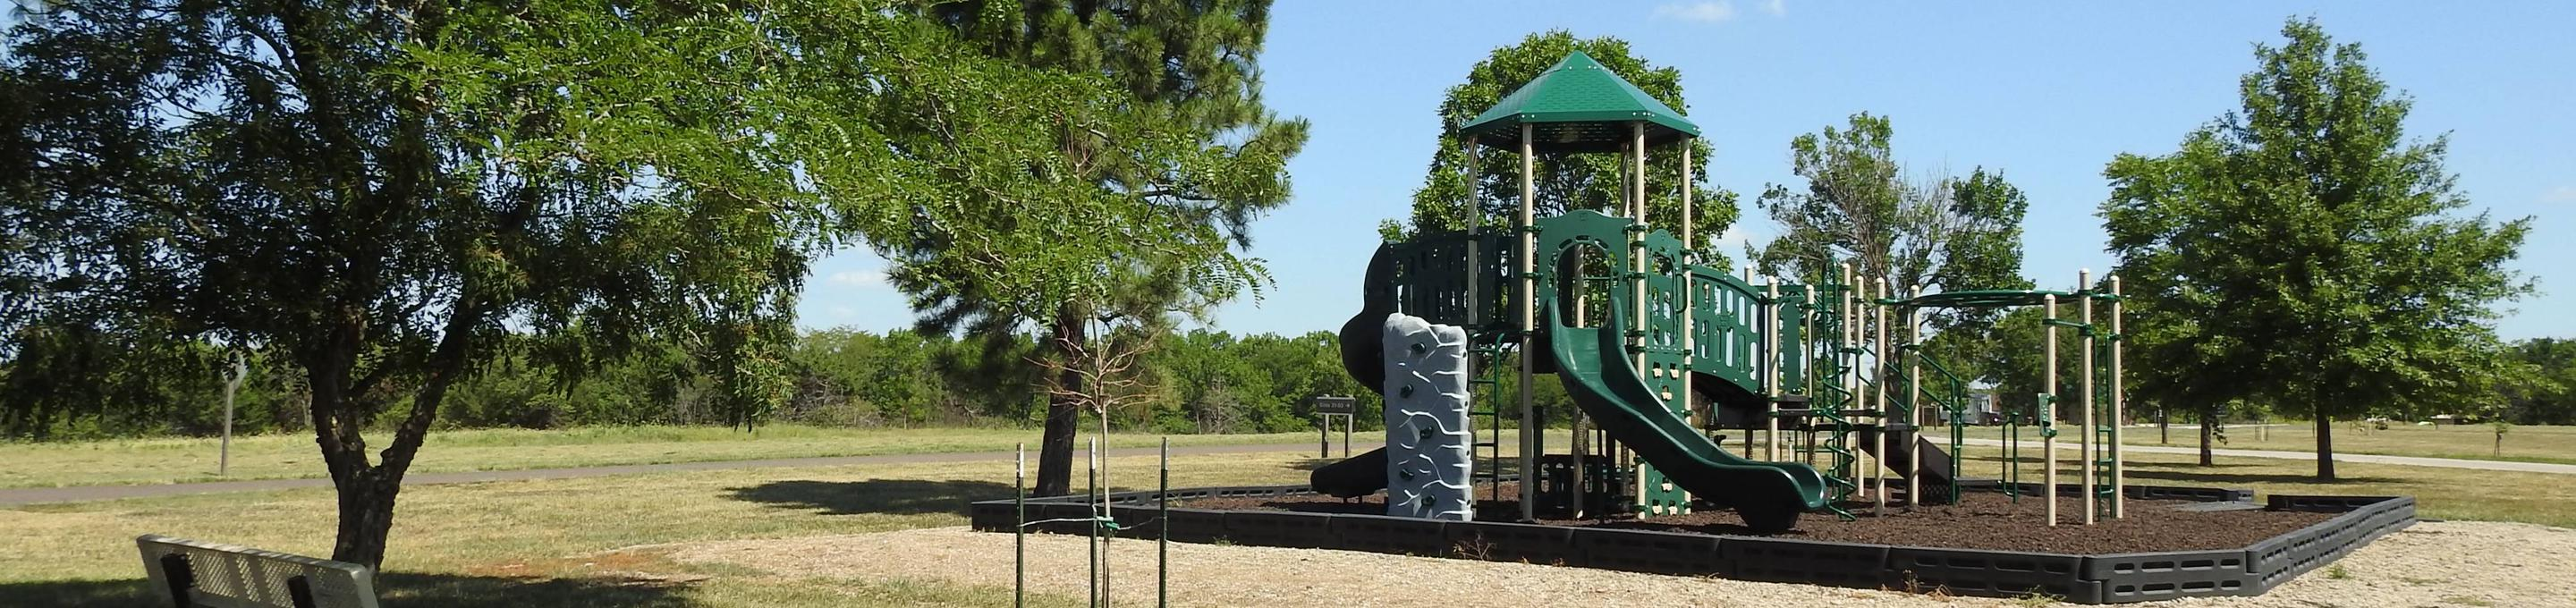 Turkey Point Playground